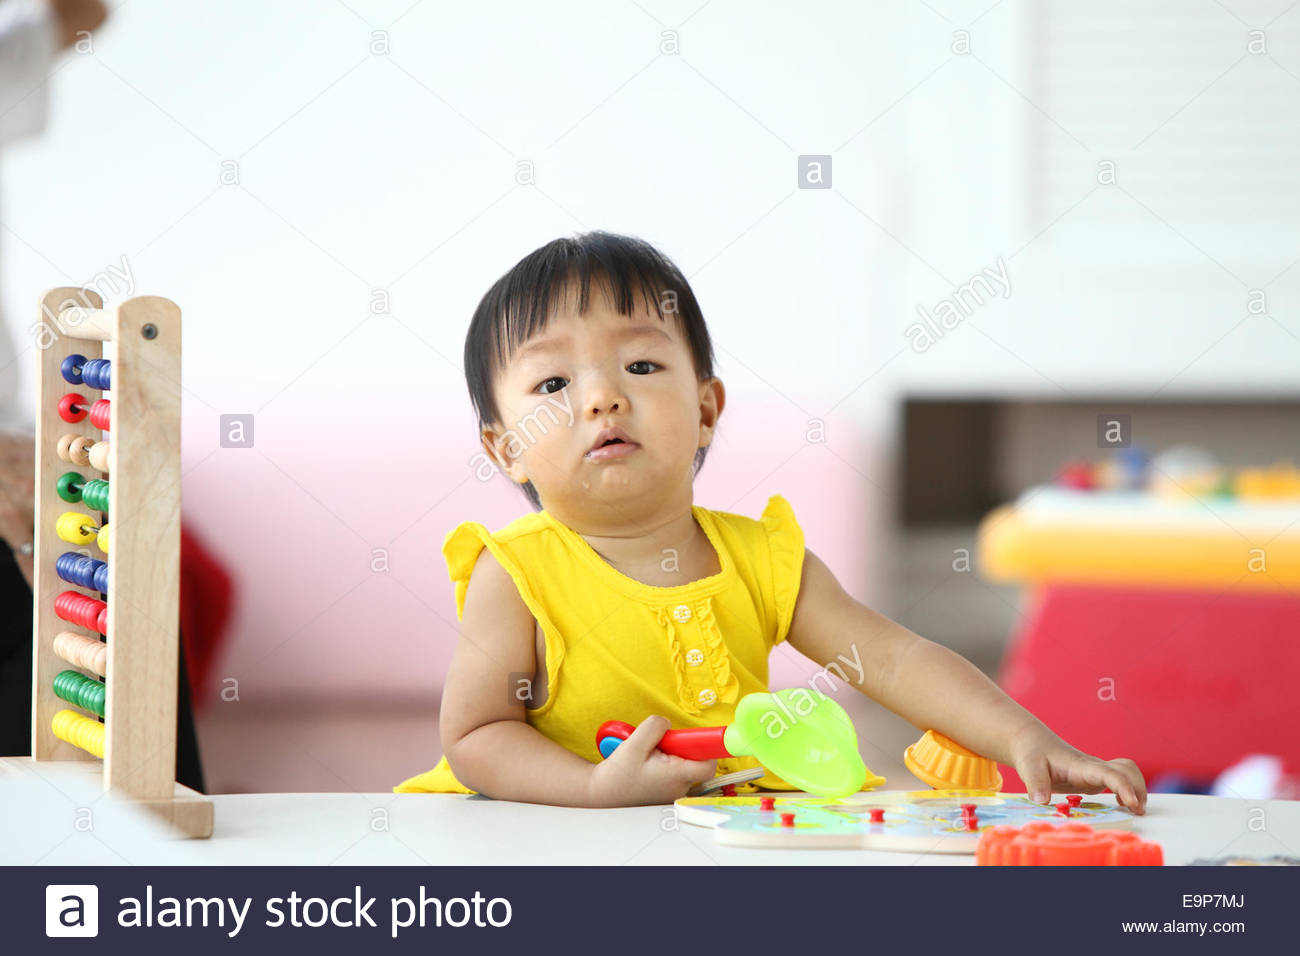 curious baby girl studying nursery room - Stock Image